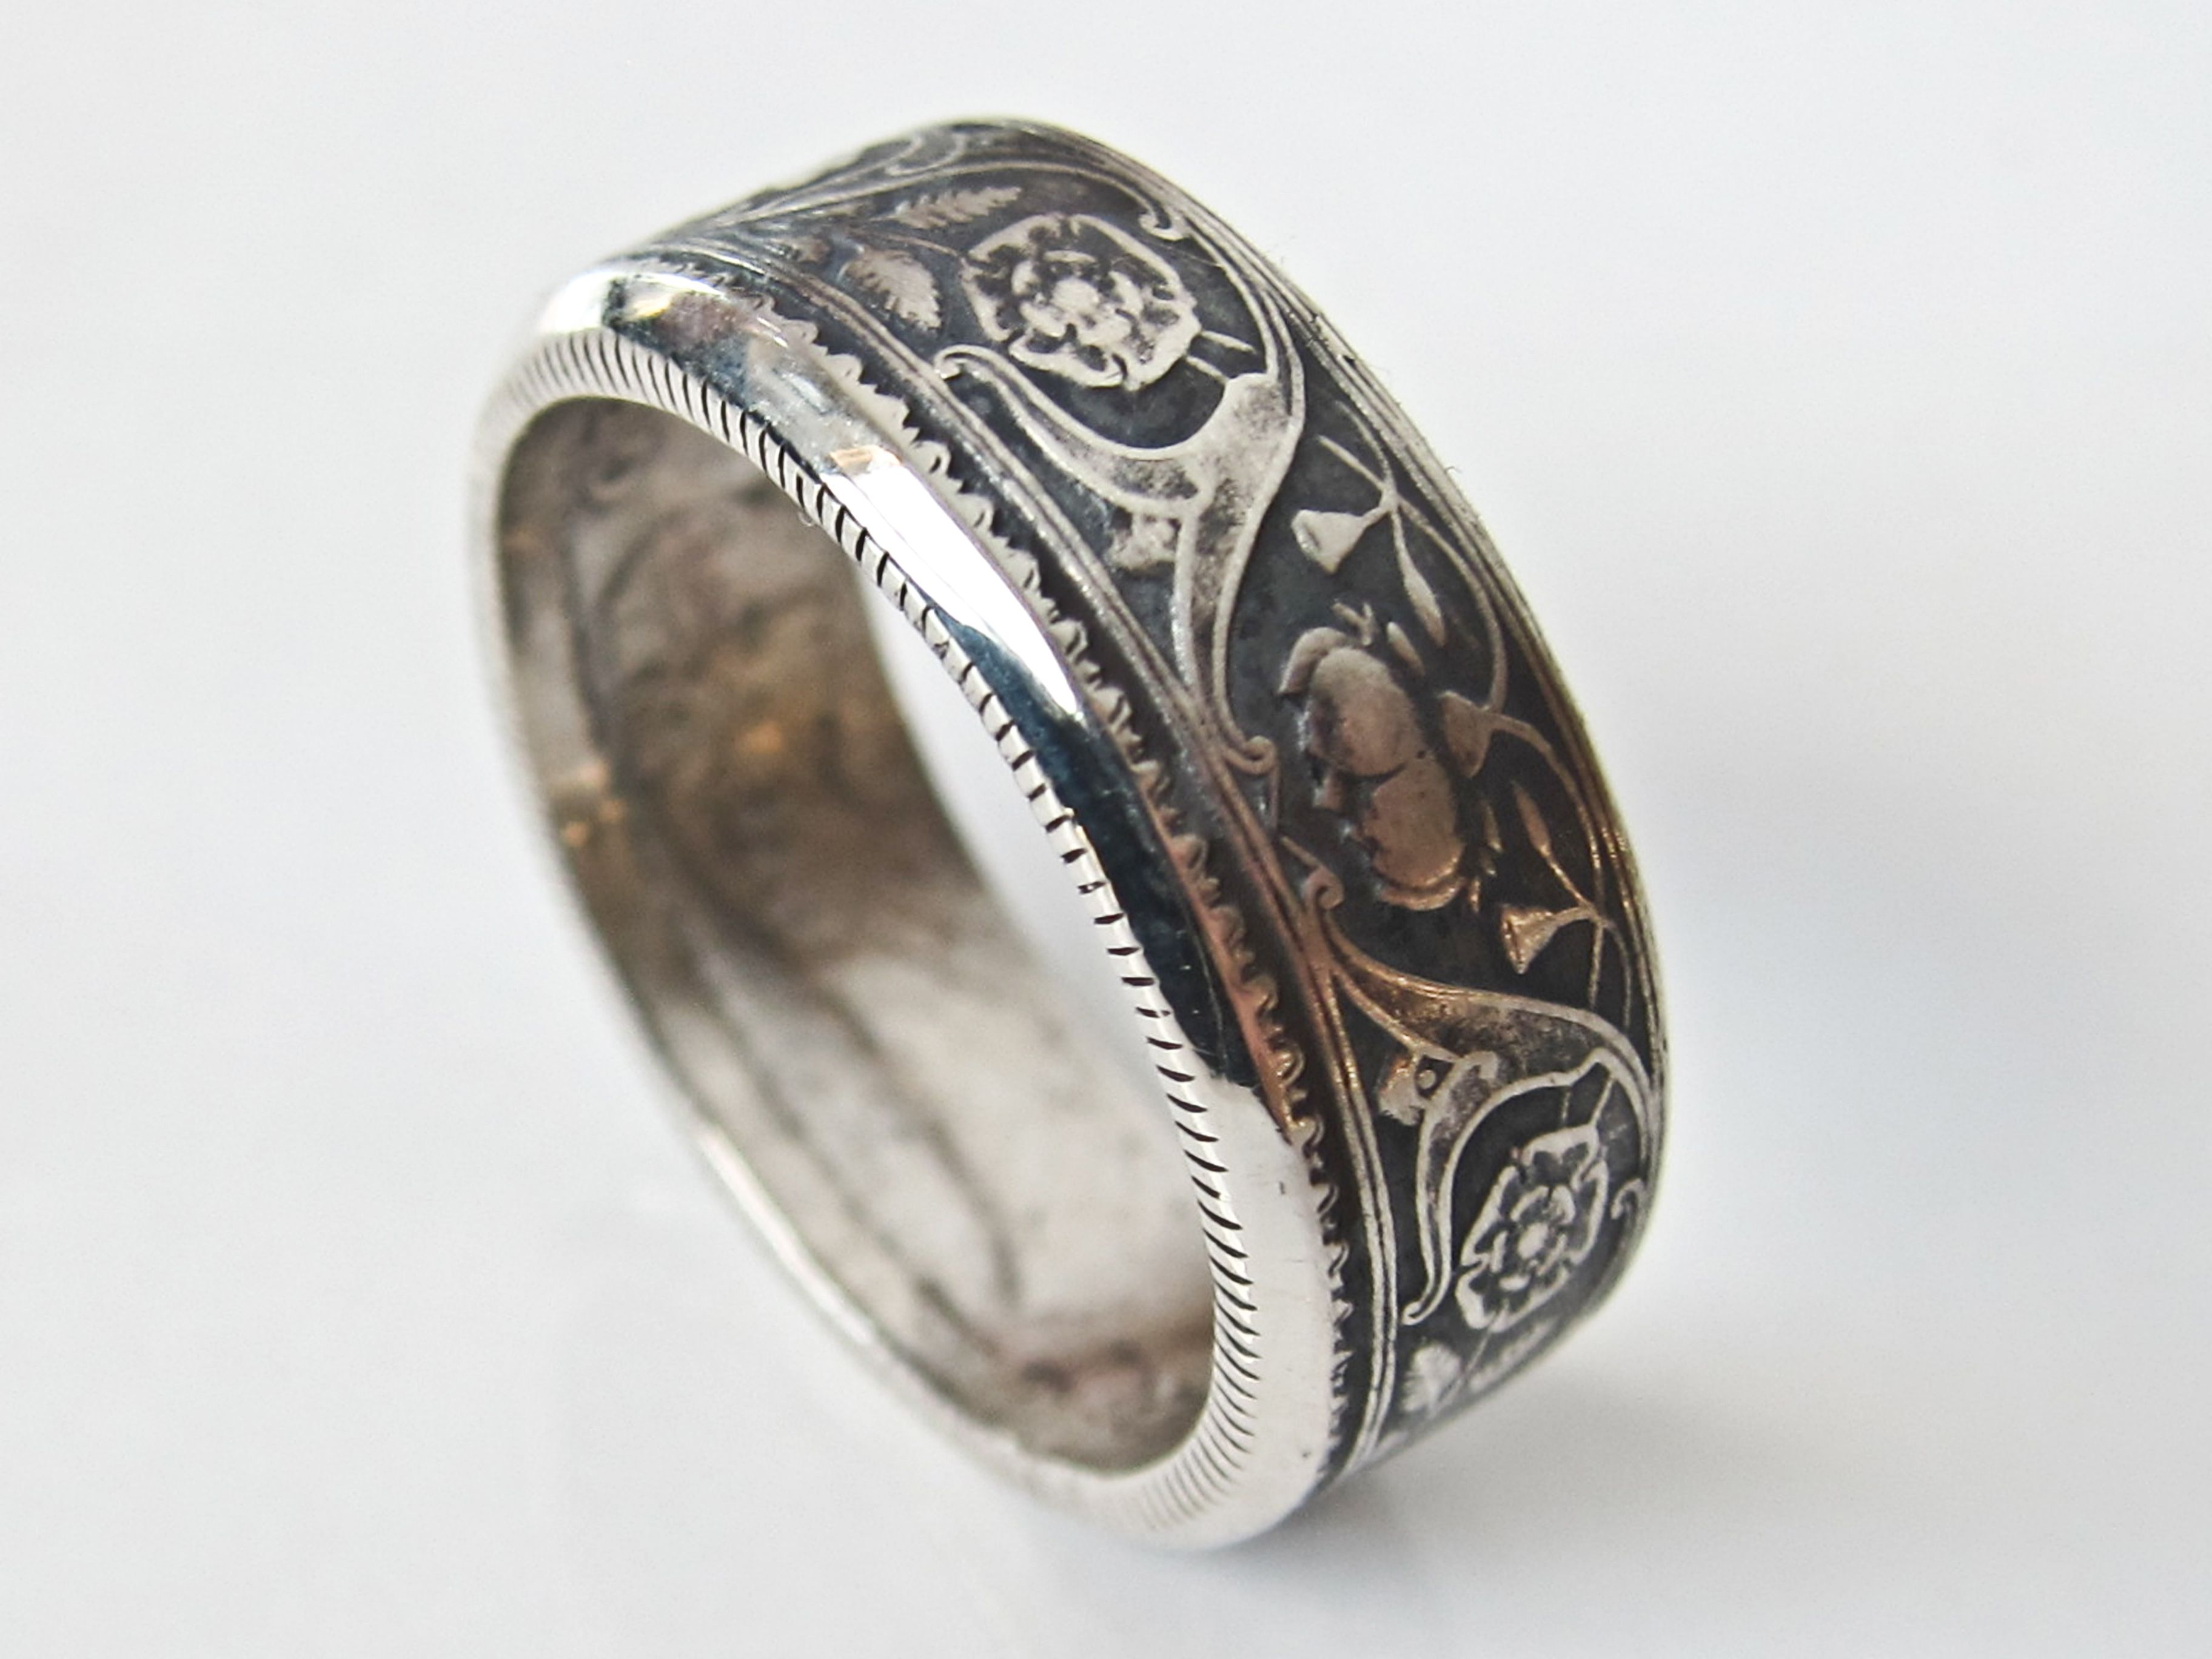 1936 Silver British India Half Rupee Coin Ring. George V Design. Two sided.  Hand made by me. Osheacoinrings.com